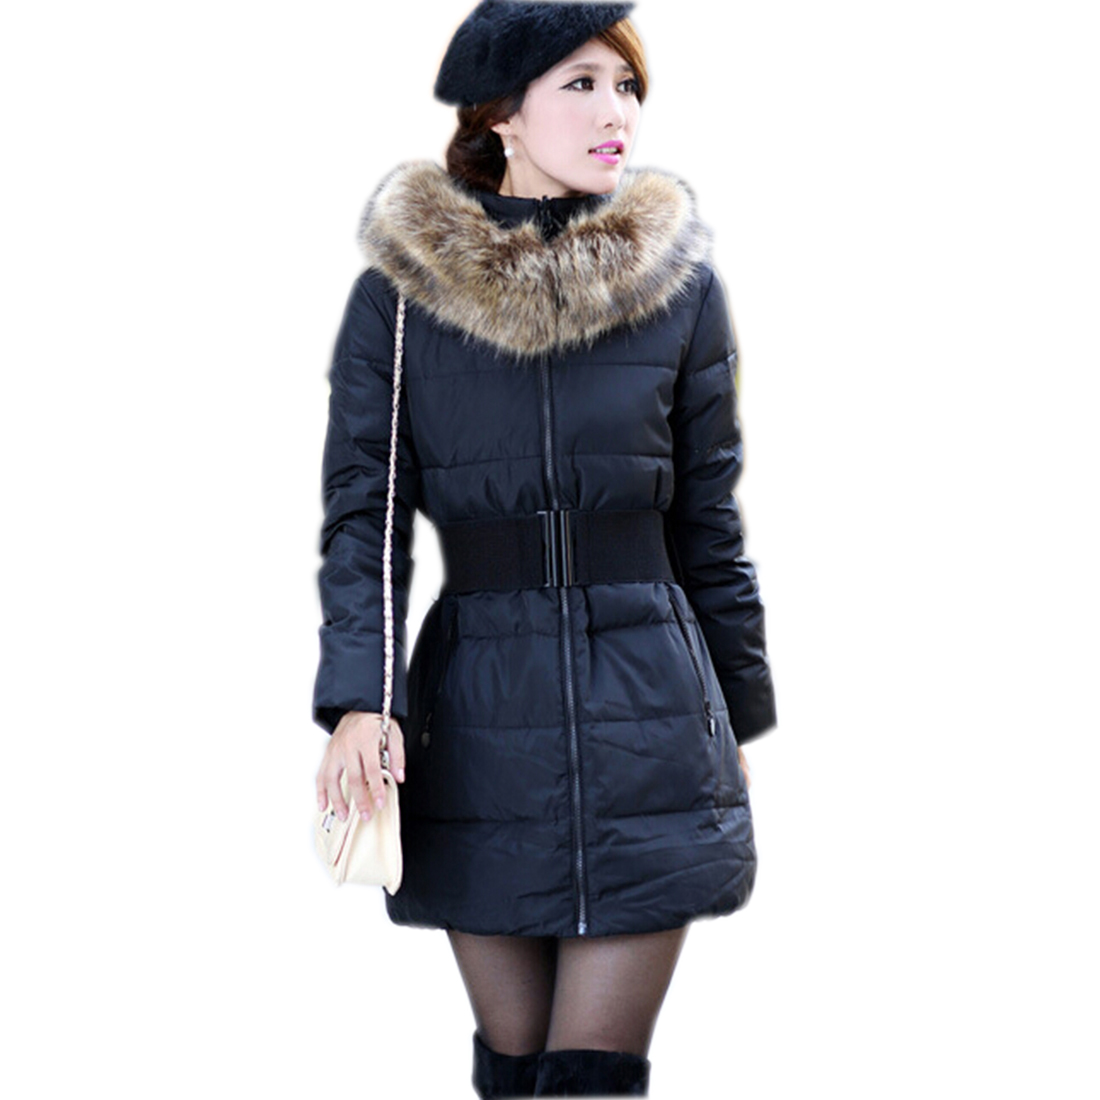 Fashion 2017 autumn winter women long parka female warm jacket coat slim hooded fur collar Fashion solitaire winter style